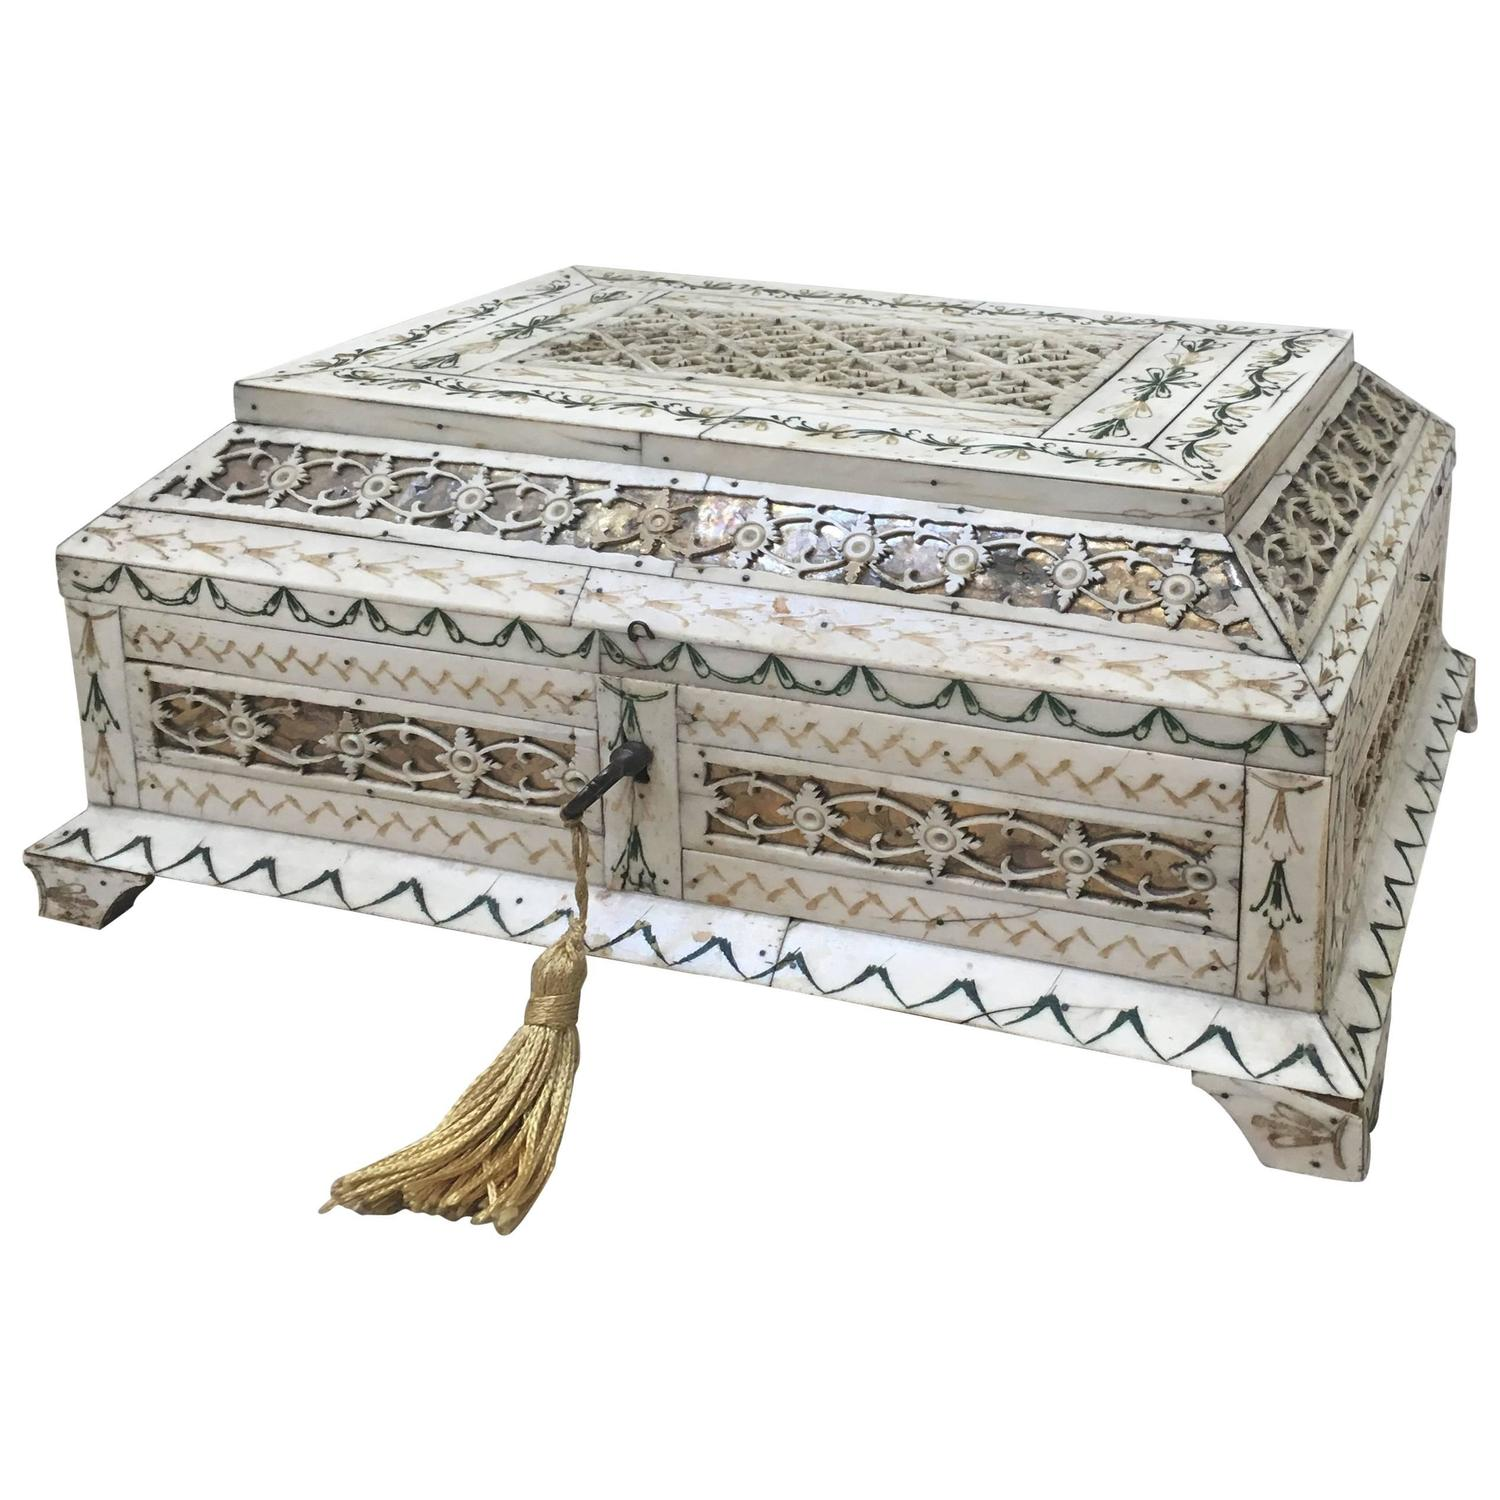 Italian Bone Carved Embriachi Marriage Casket For Sale at 1stdibs